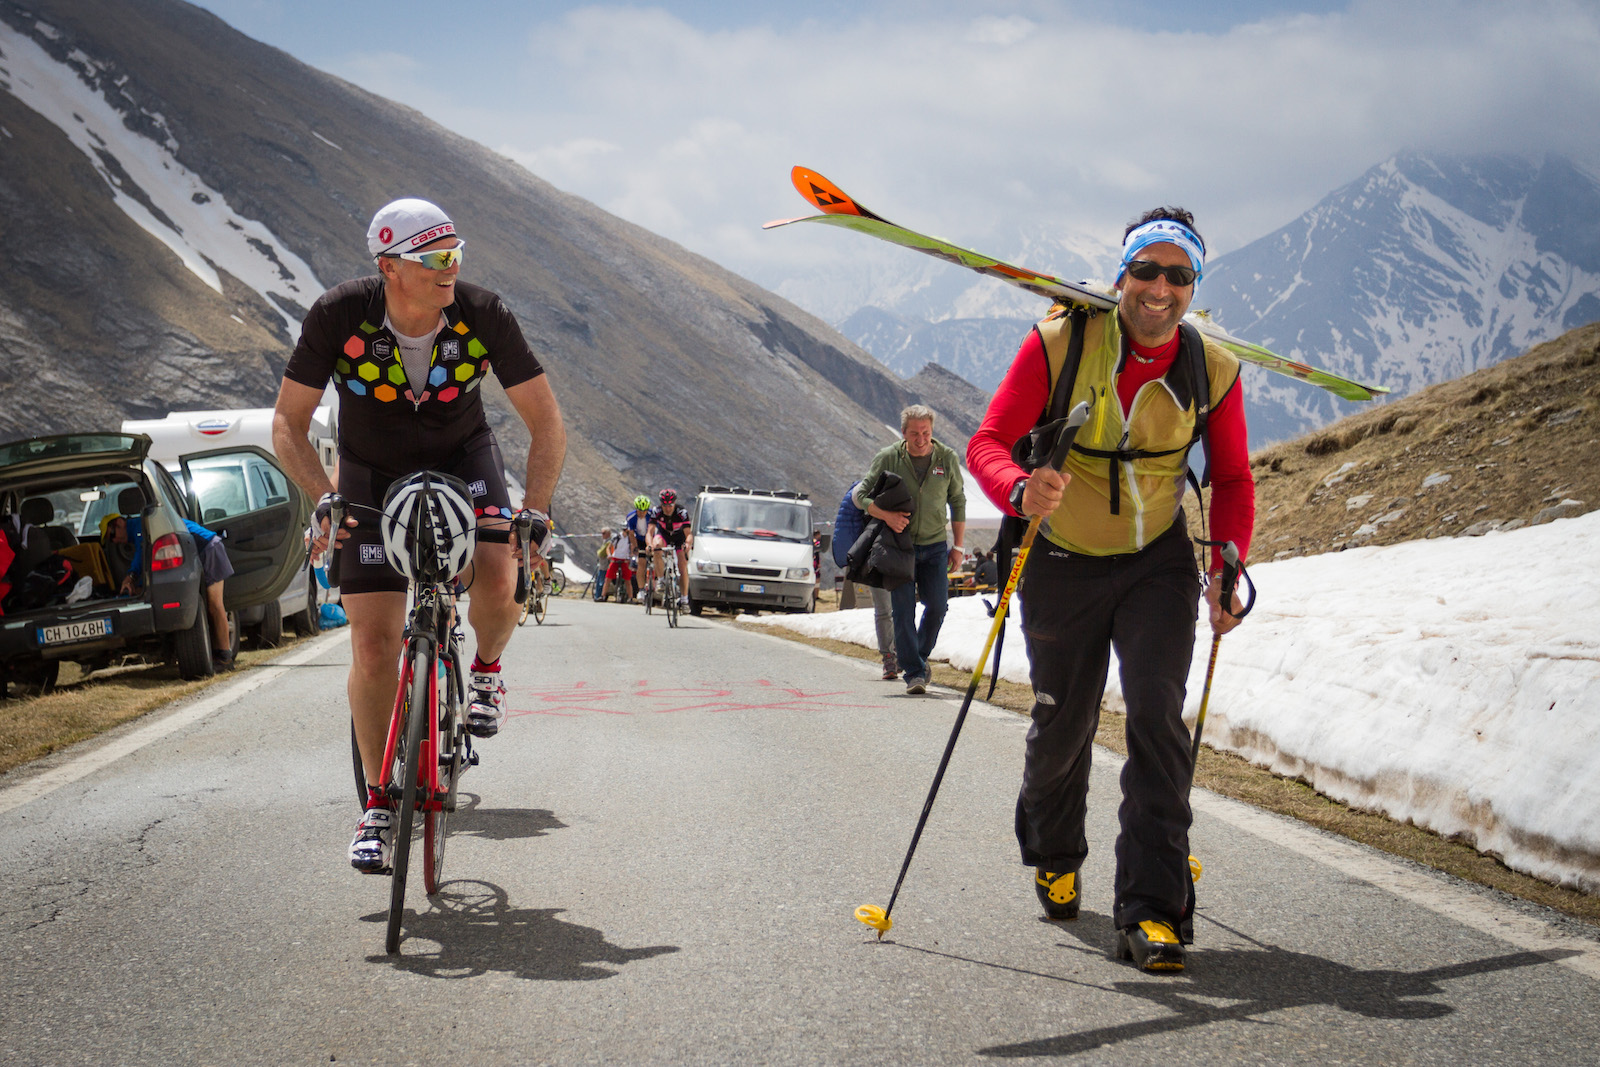 """Alain Rumpf, Switzerland. """"Stage 19 of the 2016 Giro went over the Colle dell'Agnello. Although we were in late May, there was still a lot of snow on this giant of the Alps (2'744 m). Enough for some late season ski touring... I love this shot because it shows two happy dudes enjoying the mountains, each one in his own way. I don't know which one I was more jealous of on that day."""" DSLR. @aswisswithapulse"""